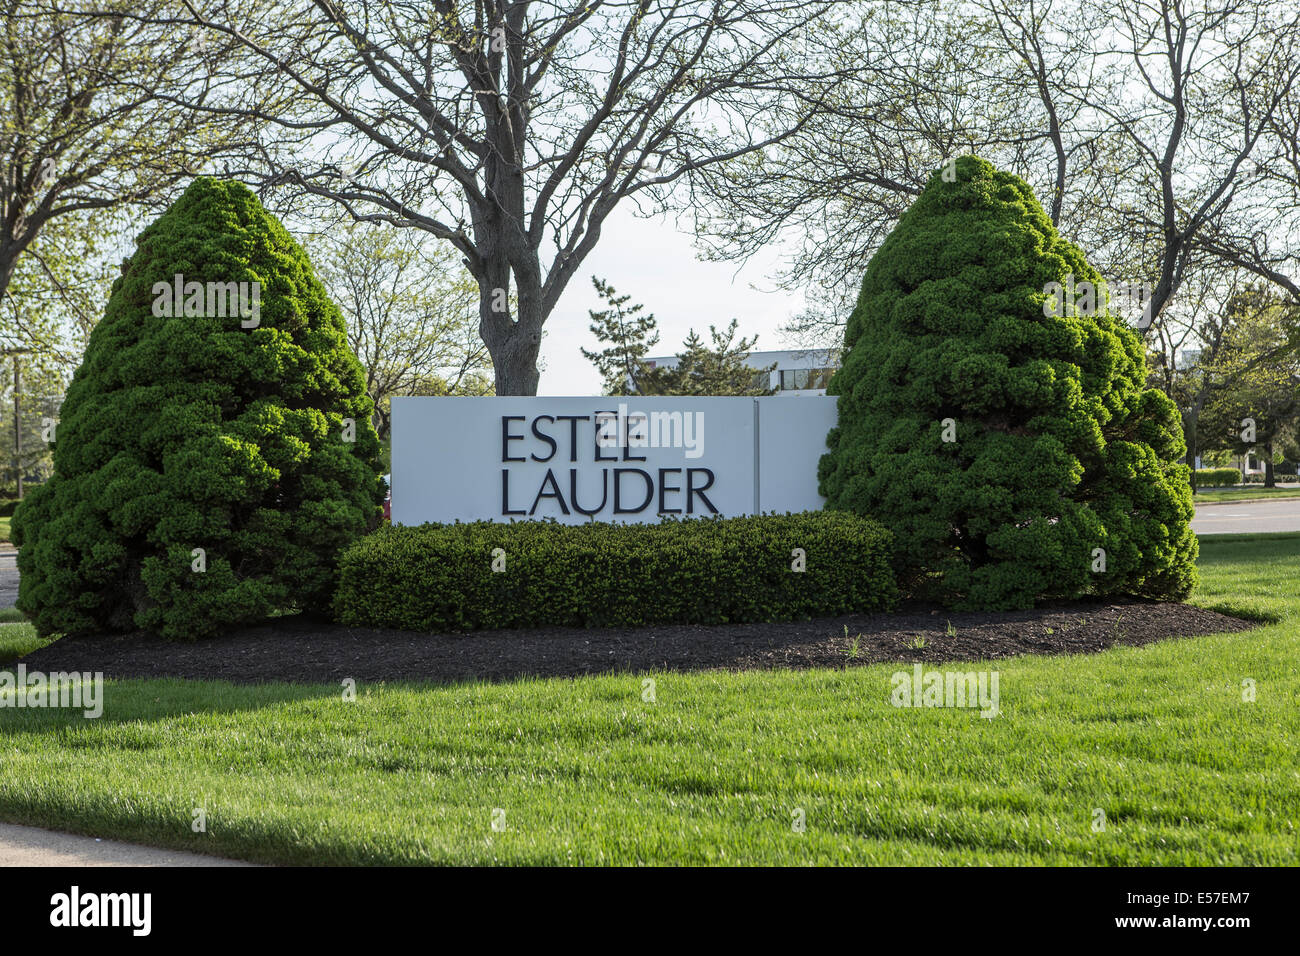 estee lauder research park is pictured in long island ny stock